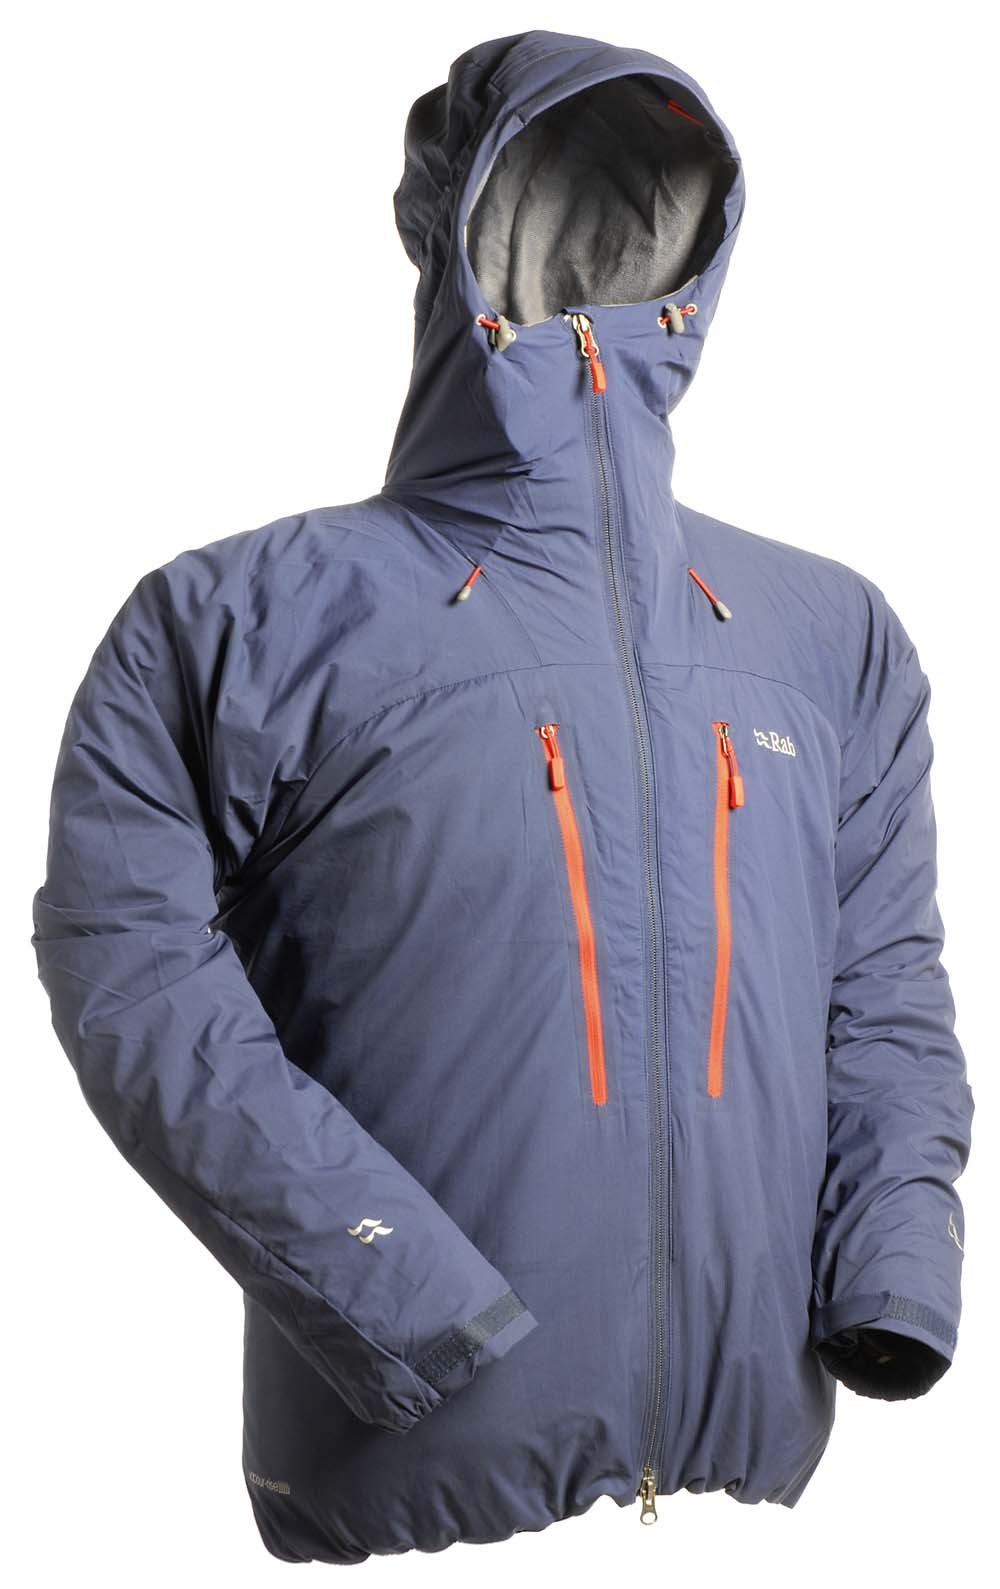 www.rab.equipment/uk